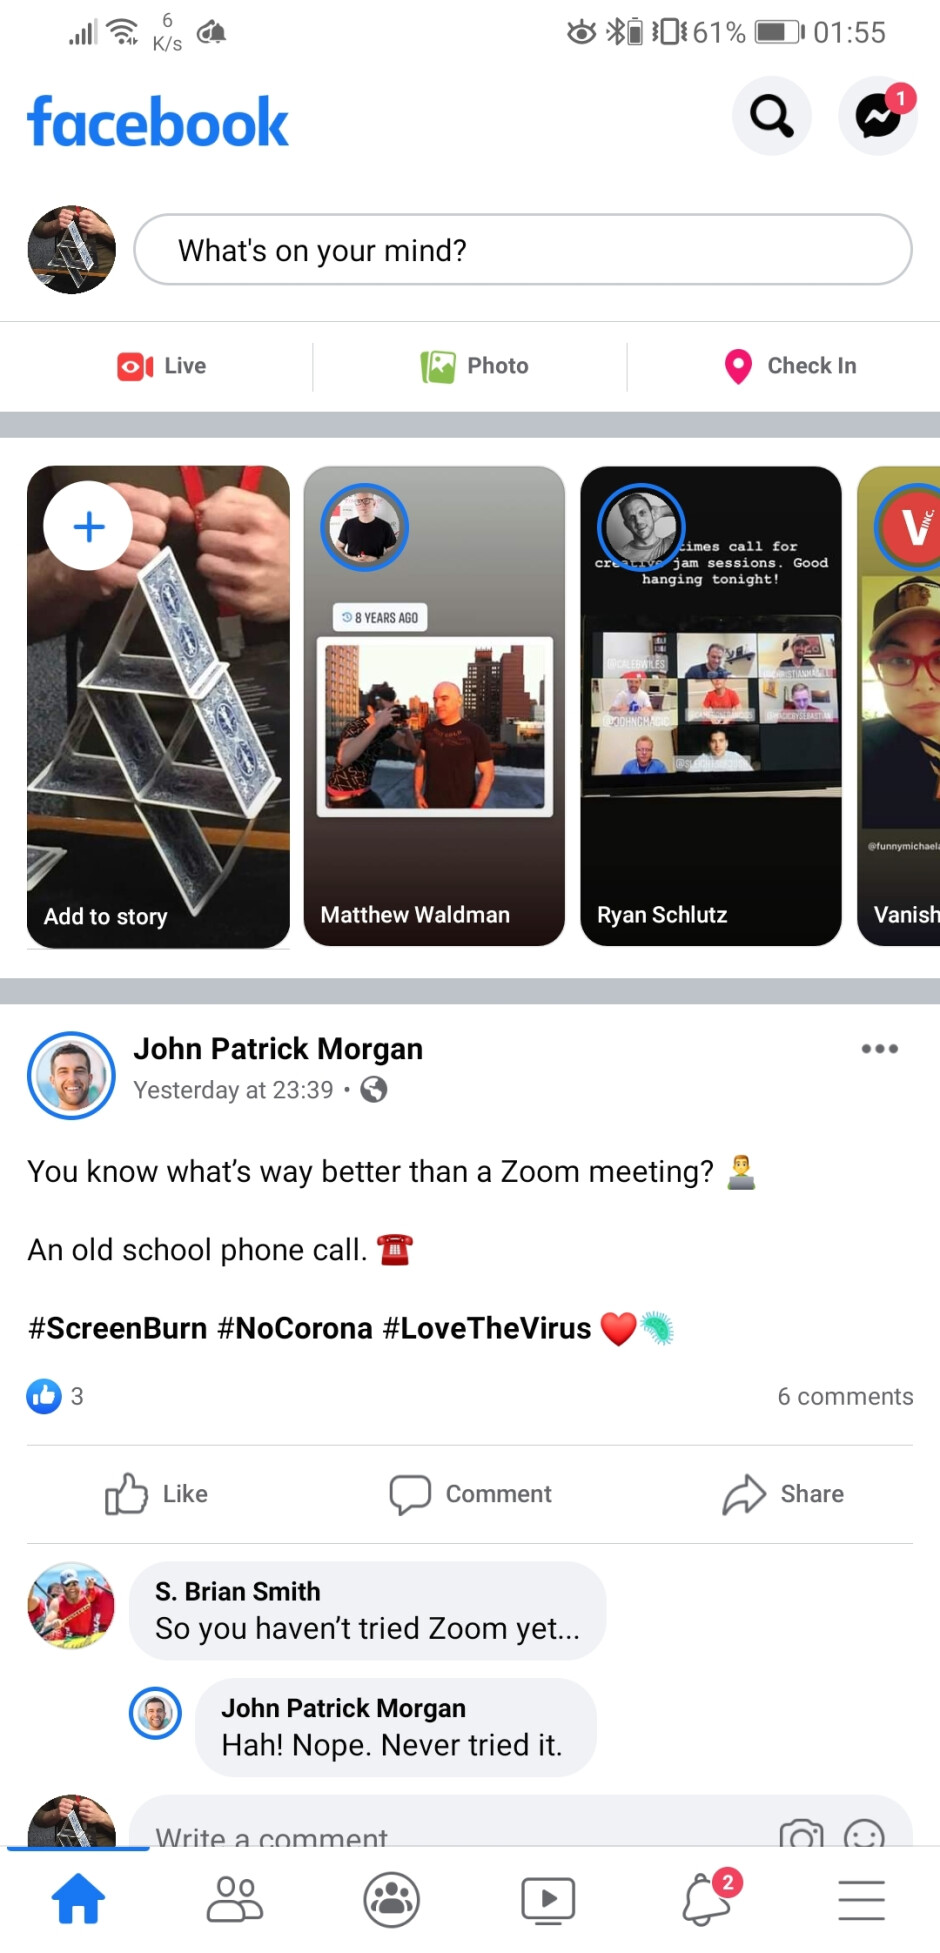 Image credits -tboy2000 via Reddit - Facebook starts rolling out new UI on Android devices